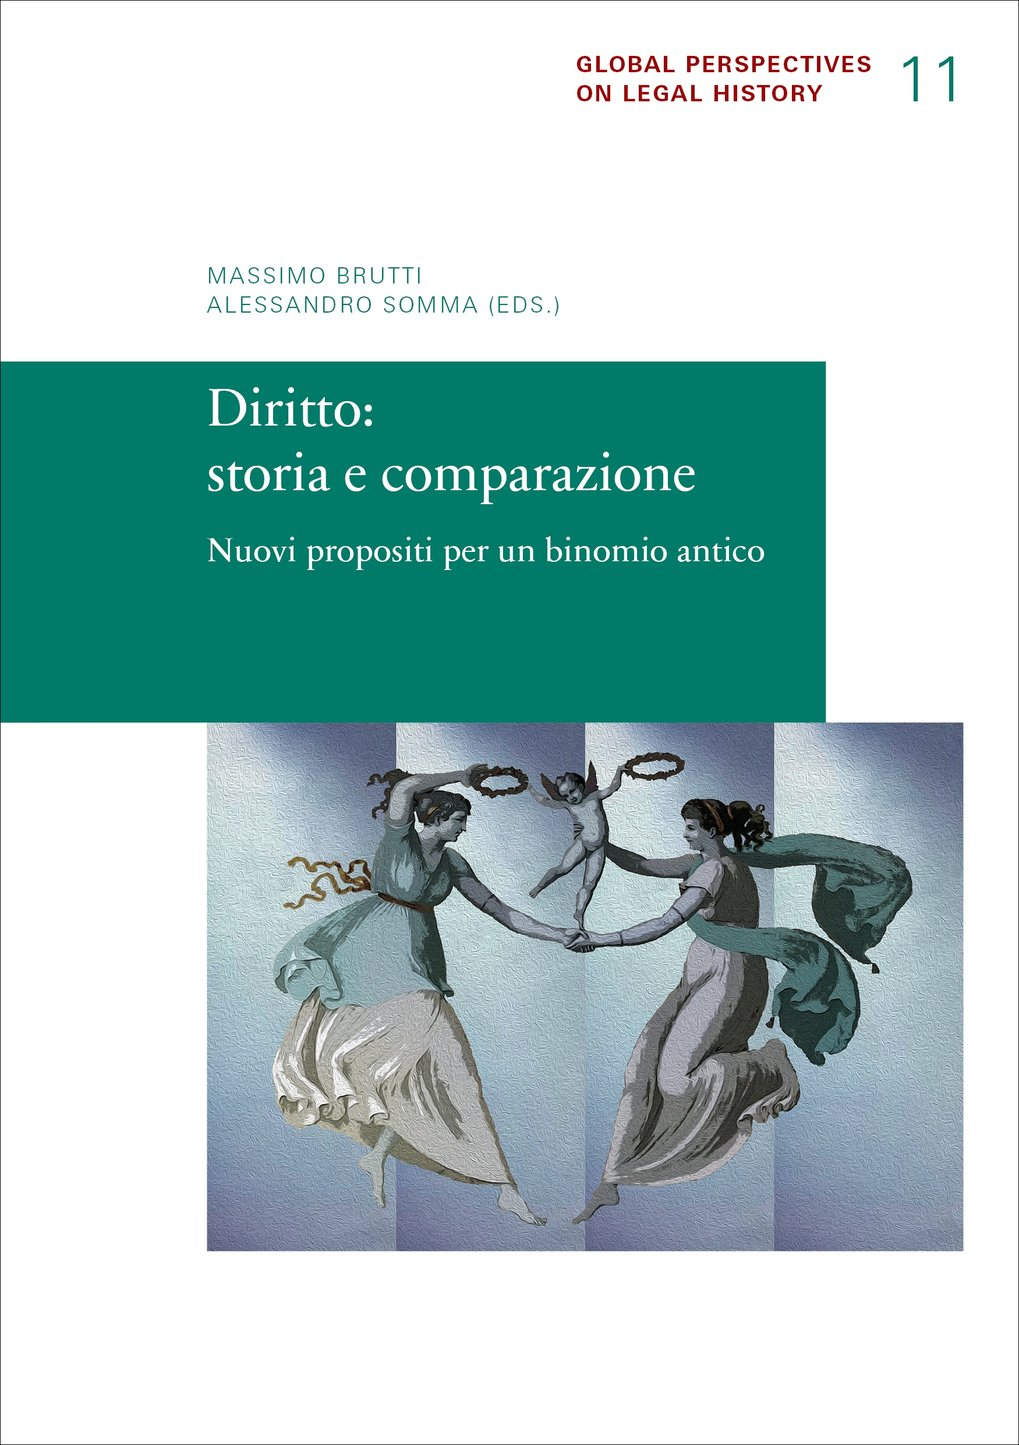 Massimo Brutti, Alessandro Somma (eds.)Global Perspectives on Legal History 11